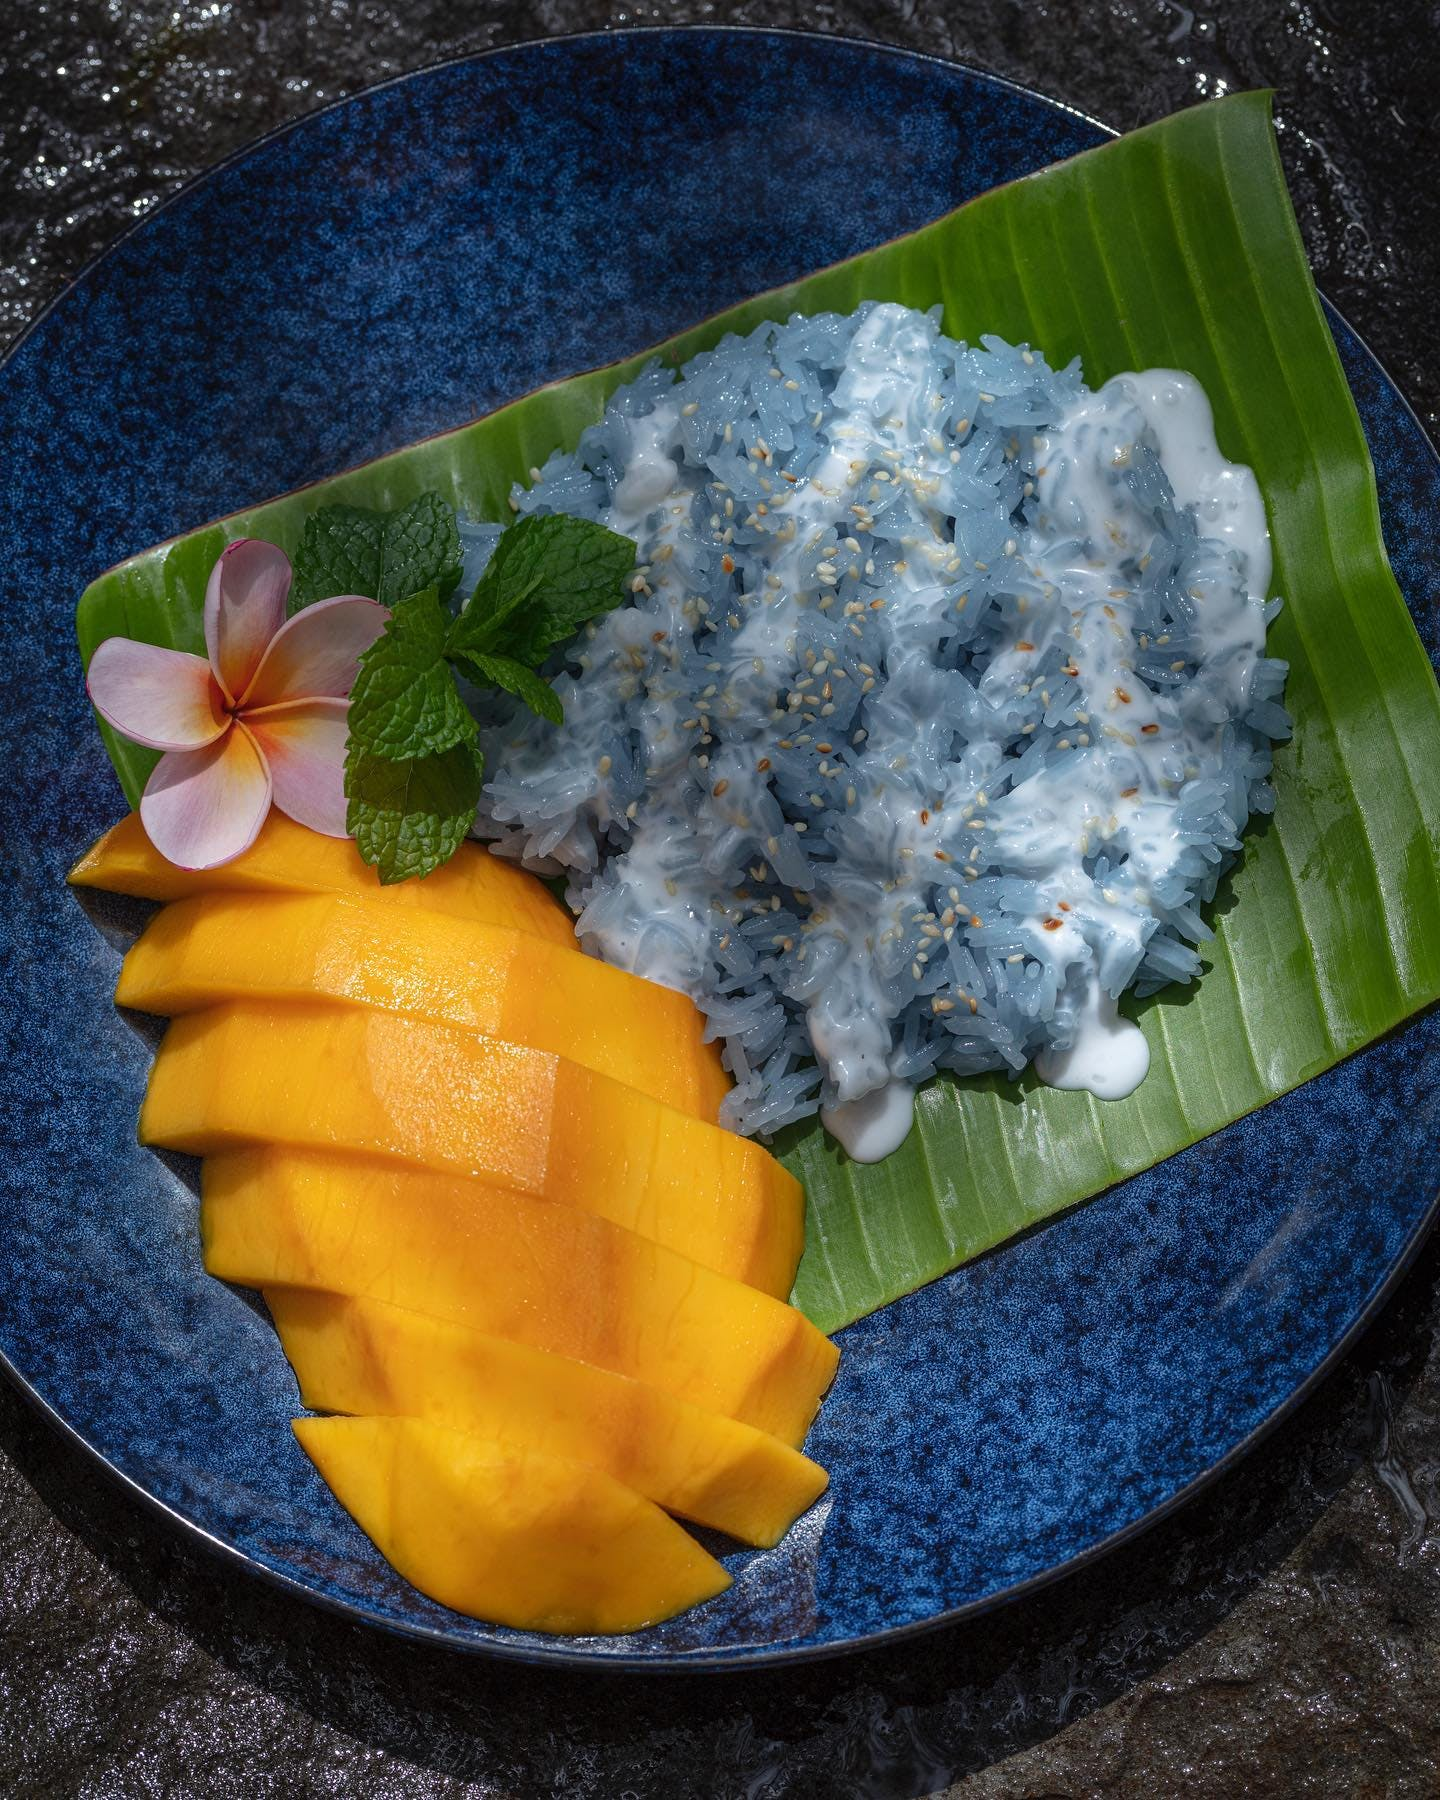 Thai Sticky Rice with Mango by @imimstreetfood  One of my most favourite dishes in the world and now have the recipe published in Noosa's very own cookbook @cooknoosa  I remember the first time I tried this dish. My family and I had traveled to Bangkok to see my brother marry a beautiful Thai girl, Wongduan aka Moon. Moon's Mum had heard of my love for Thai food and stayed up all night making little packages of sticky rice wrapped in banana leaves for me - the night before her daughter's wedding. I was overwhelmed by her generosity and kindness.  Moon and my brother have been married 10 years now and I still crave those little parcels of sticky rice. The only thing that satisfies my craving is Im Im Street Food's Khao Niaow Ma Muang (Sticky Rice with Mango) Thanks for sharing your recipe with us Usa @imimstreetfood and thanks to Moon's mama for creating an amazing food memory for me and my family. #noosa #noosaindustrialestate #thaifood #imimstreetfood #foodvan #cooknoosa #noosacookbook   📸 @emma_jane_sheldrake for @cooknoosa